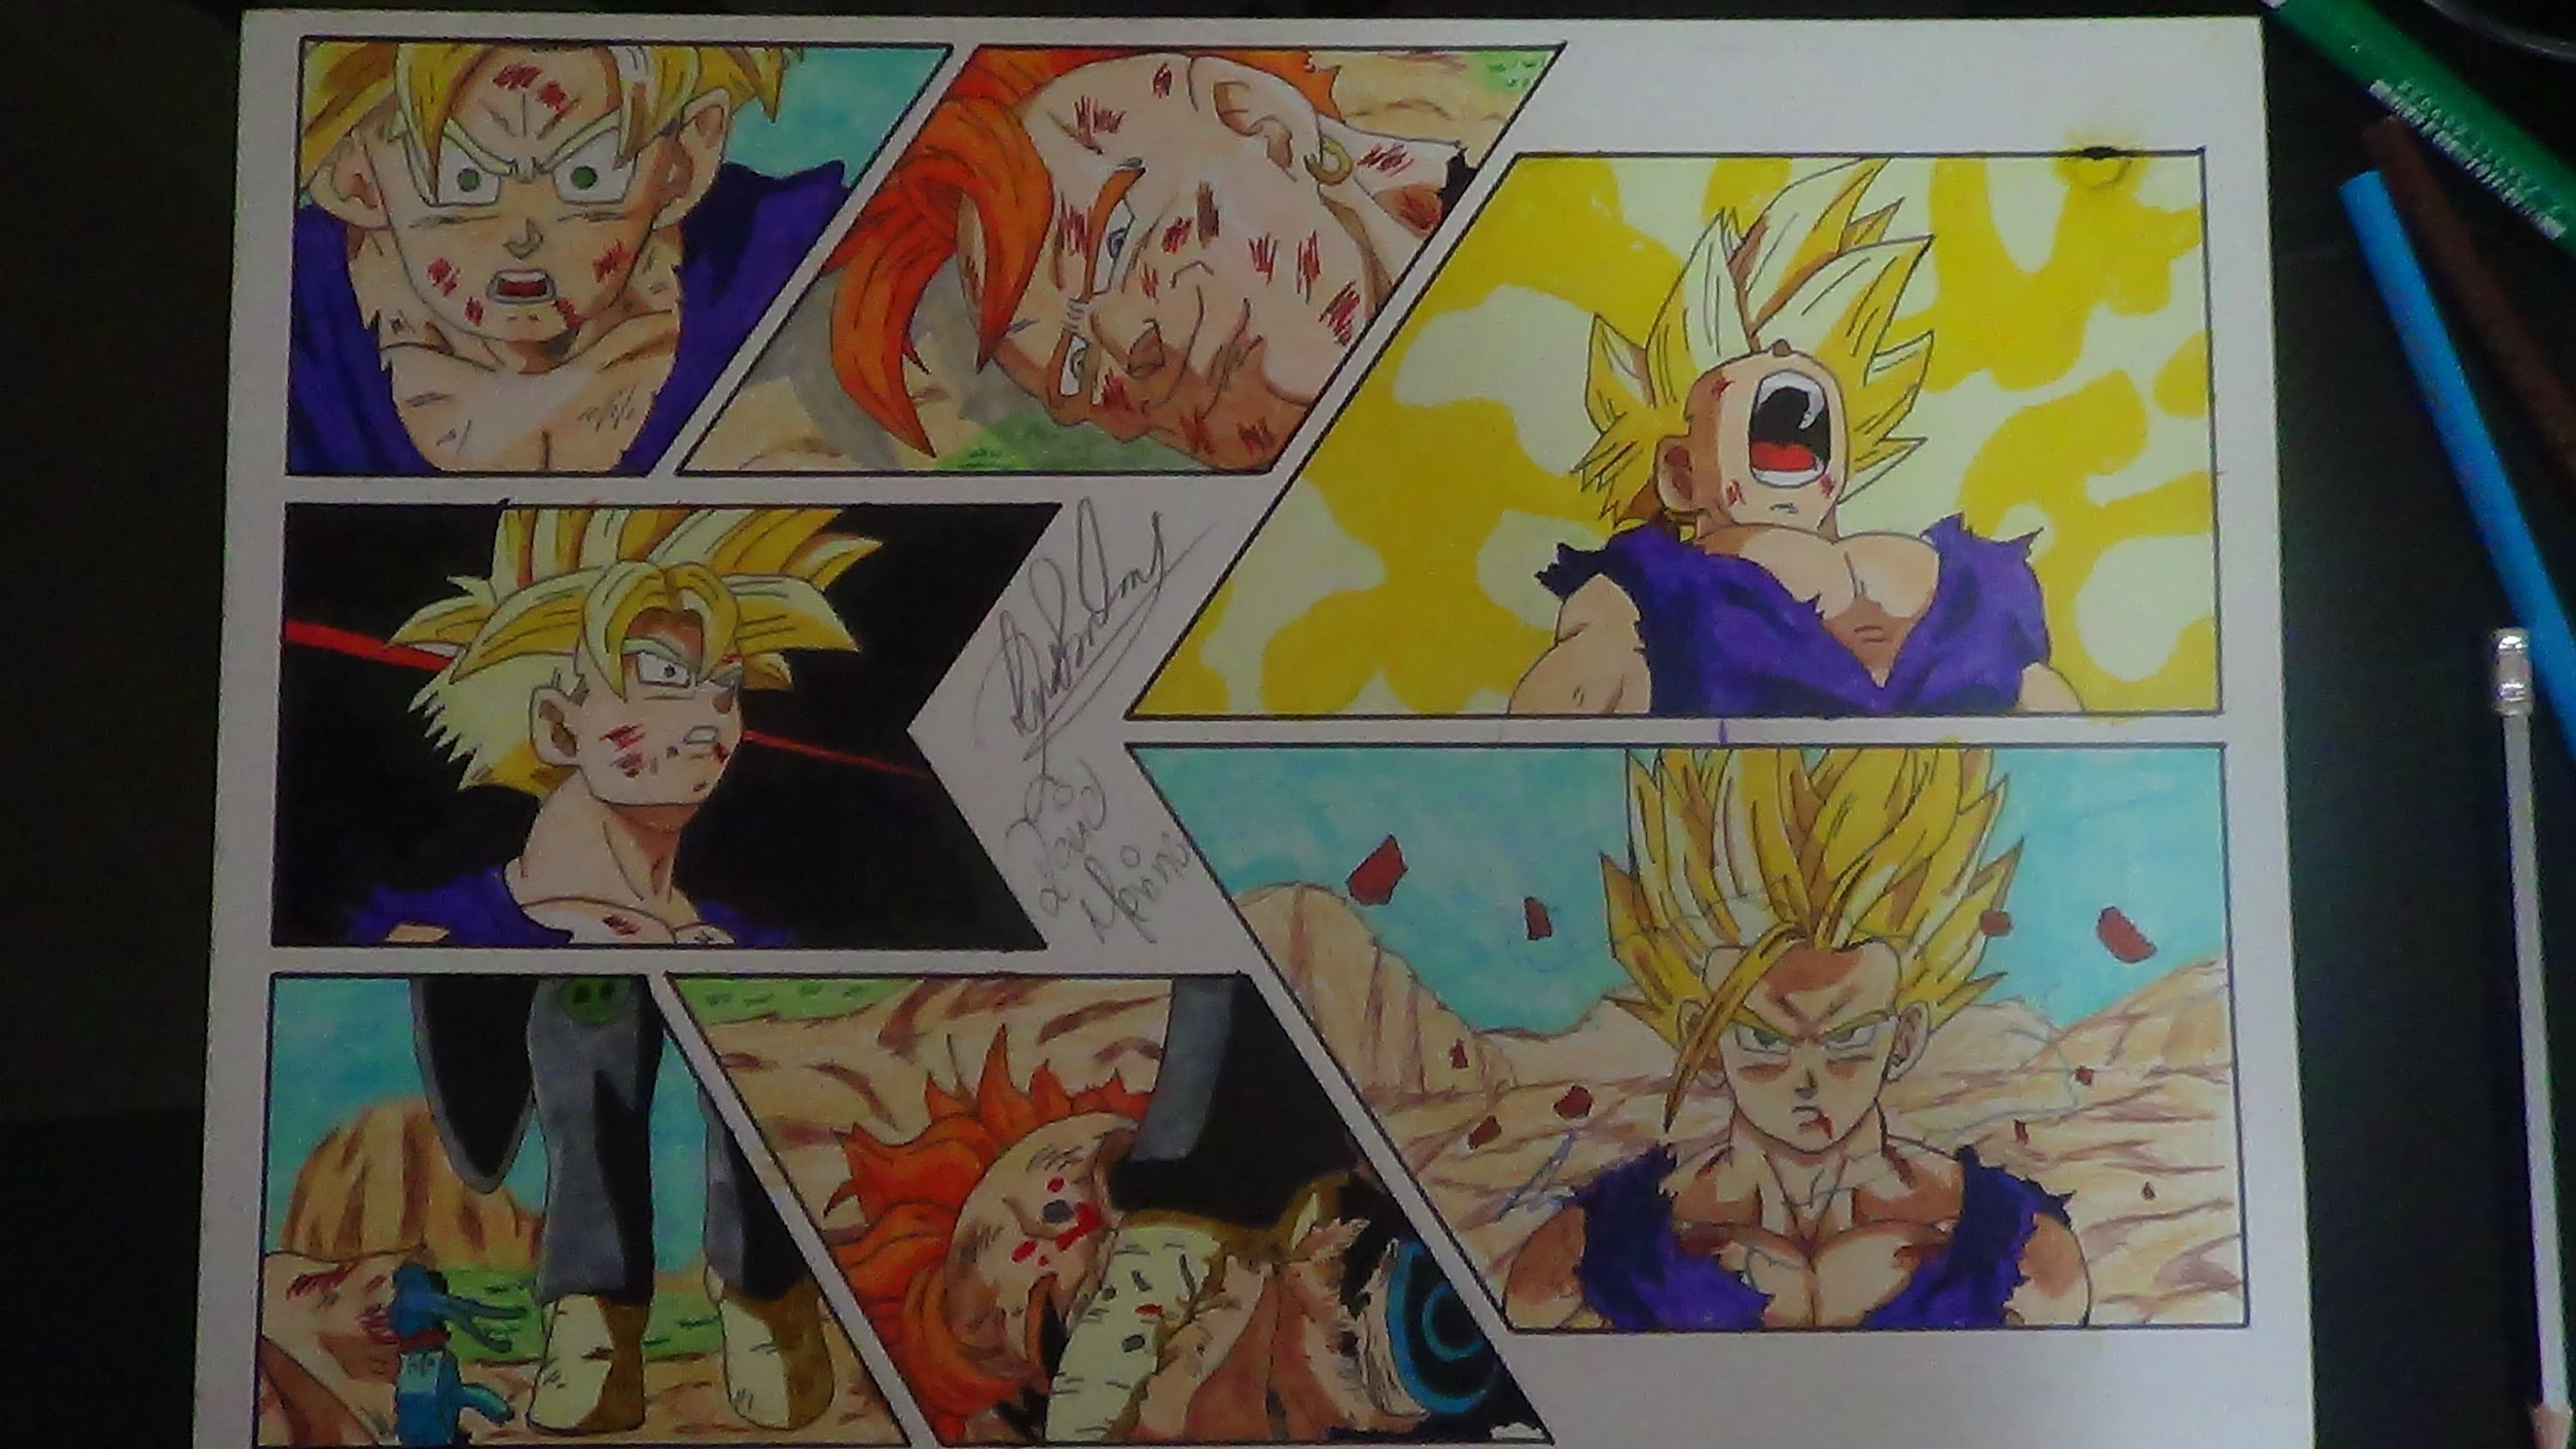 DRAGON BALL Z HOW TO DRAW GOHAN SSJ2 CELL DRAWING DIBUJO 図  ご飯 ssj